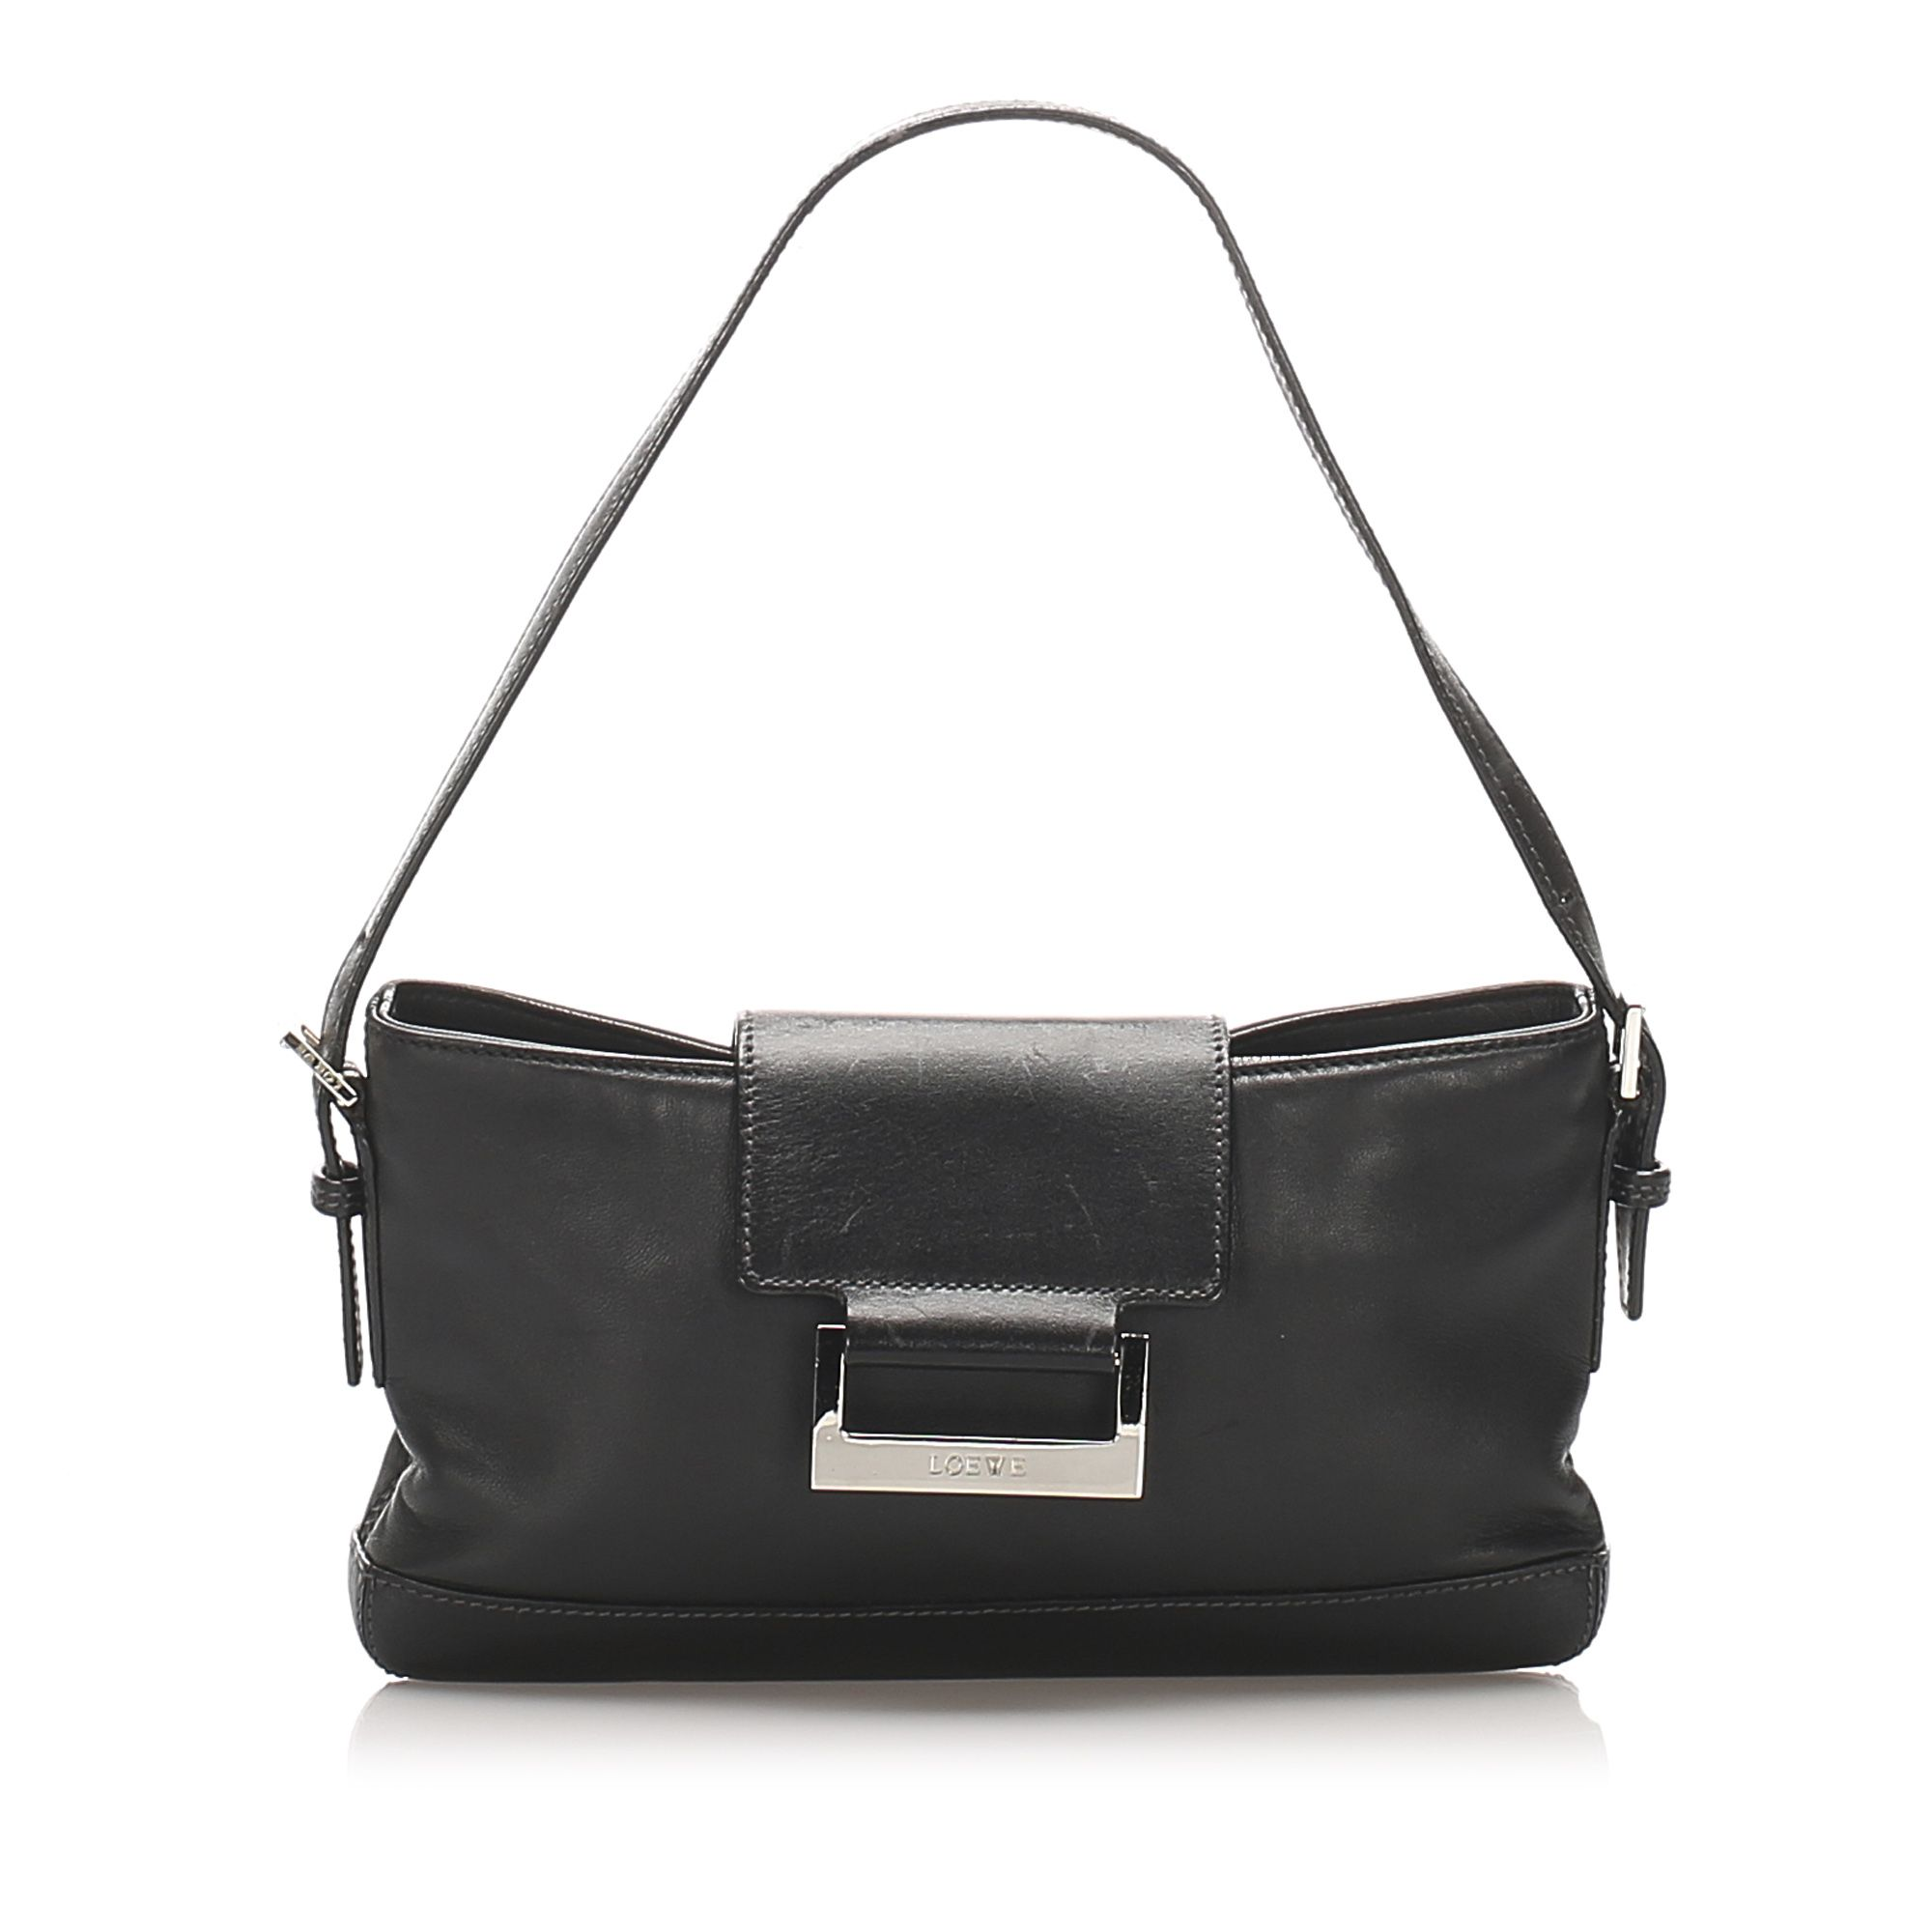 Vintage Loewe Leather Baguette Black